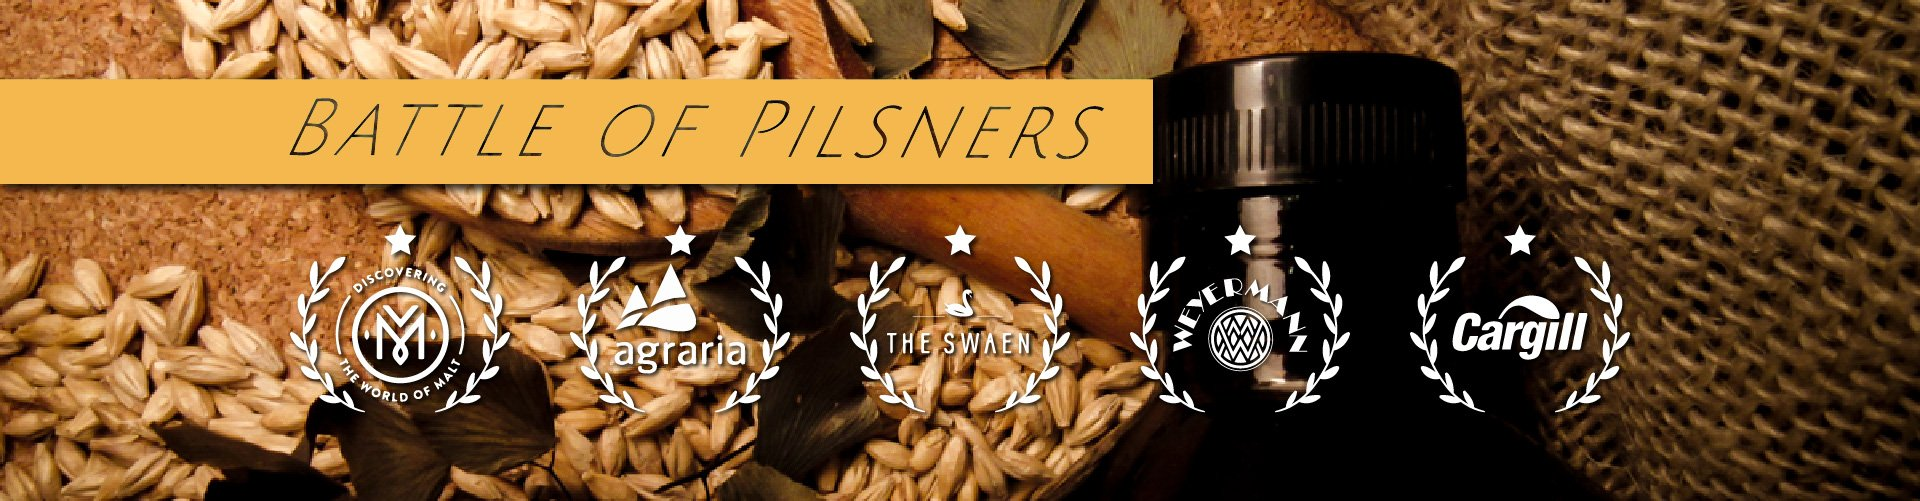 Battle of Pilserns